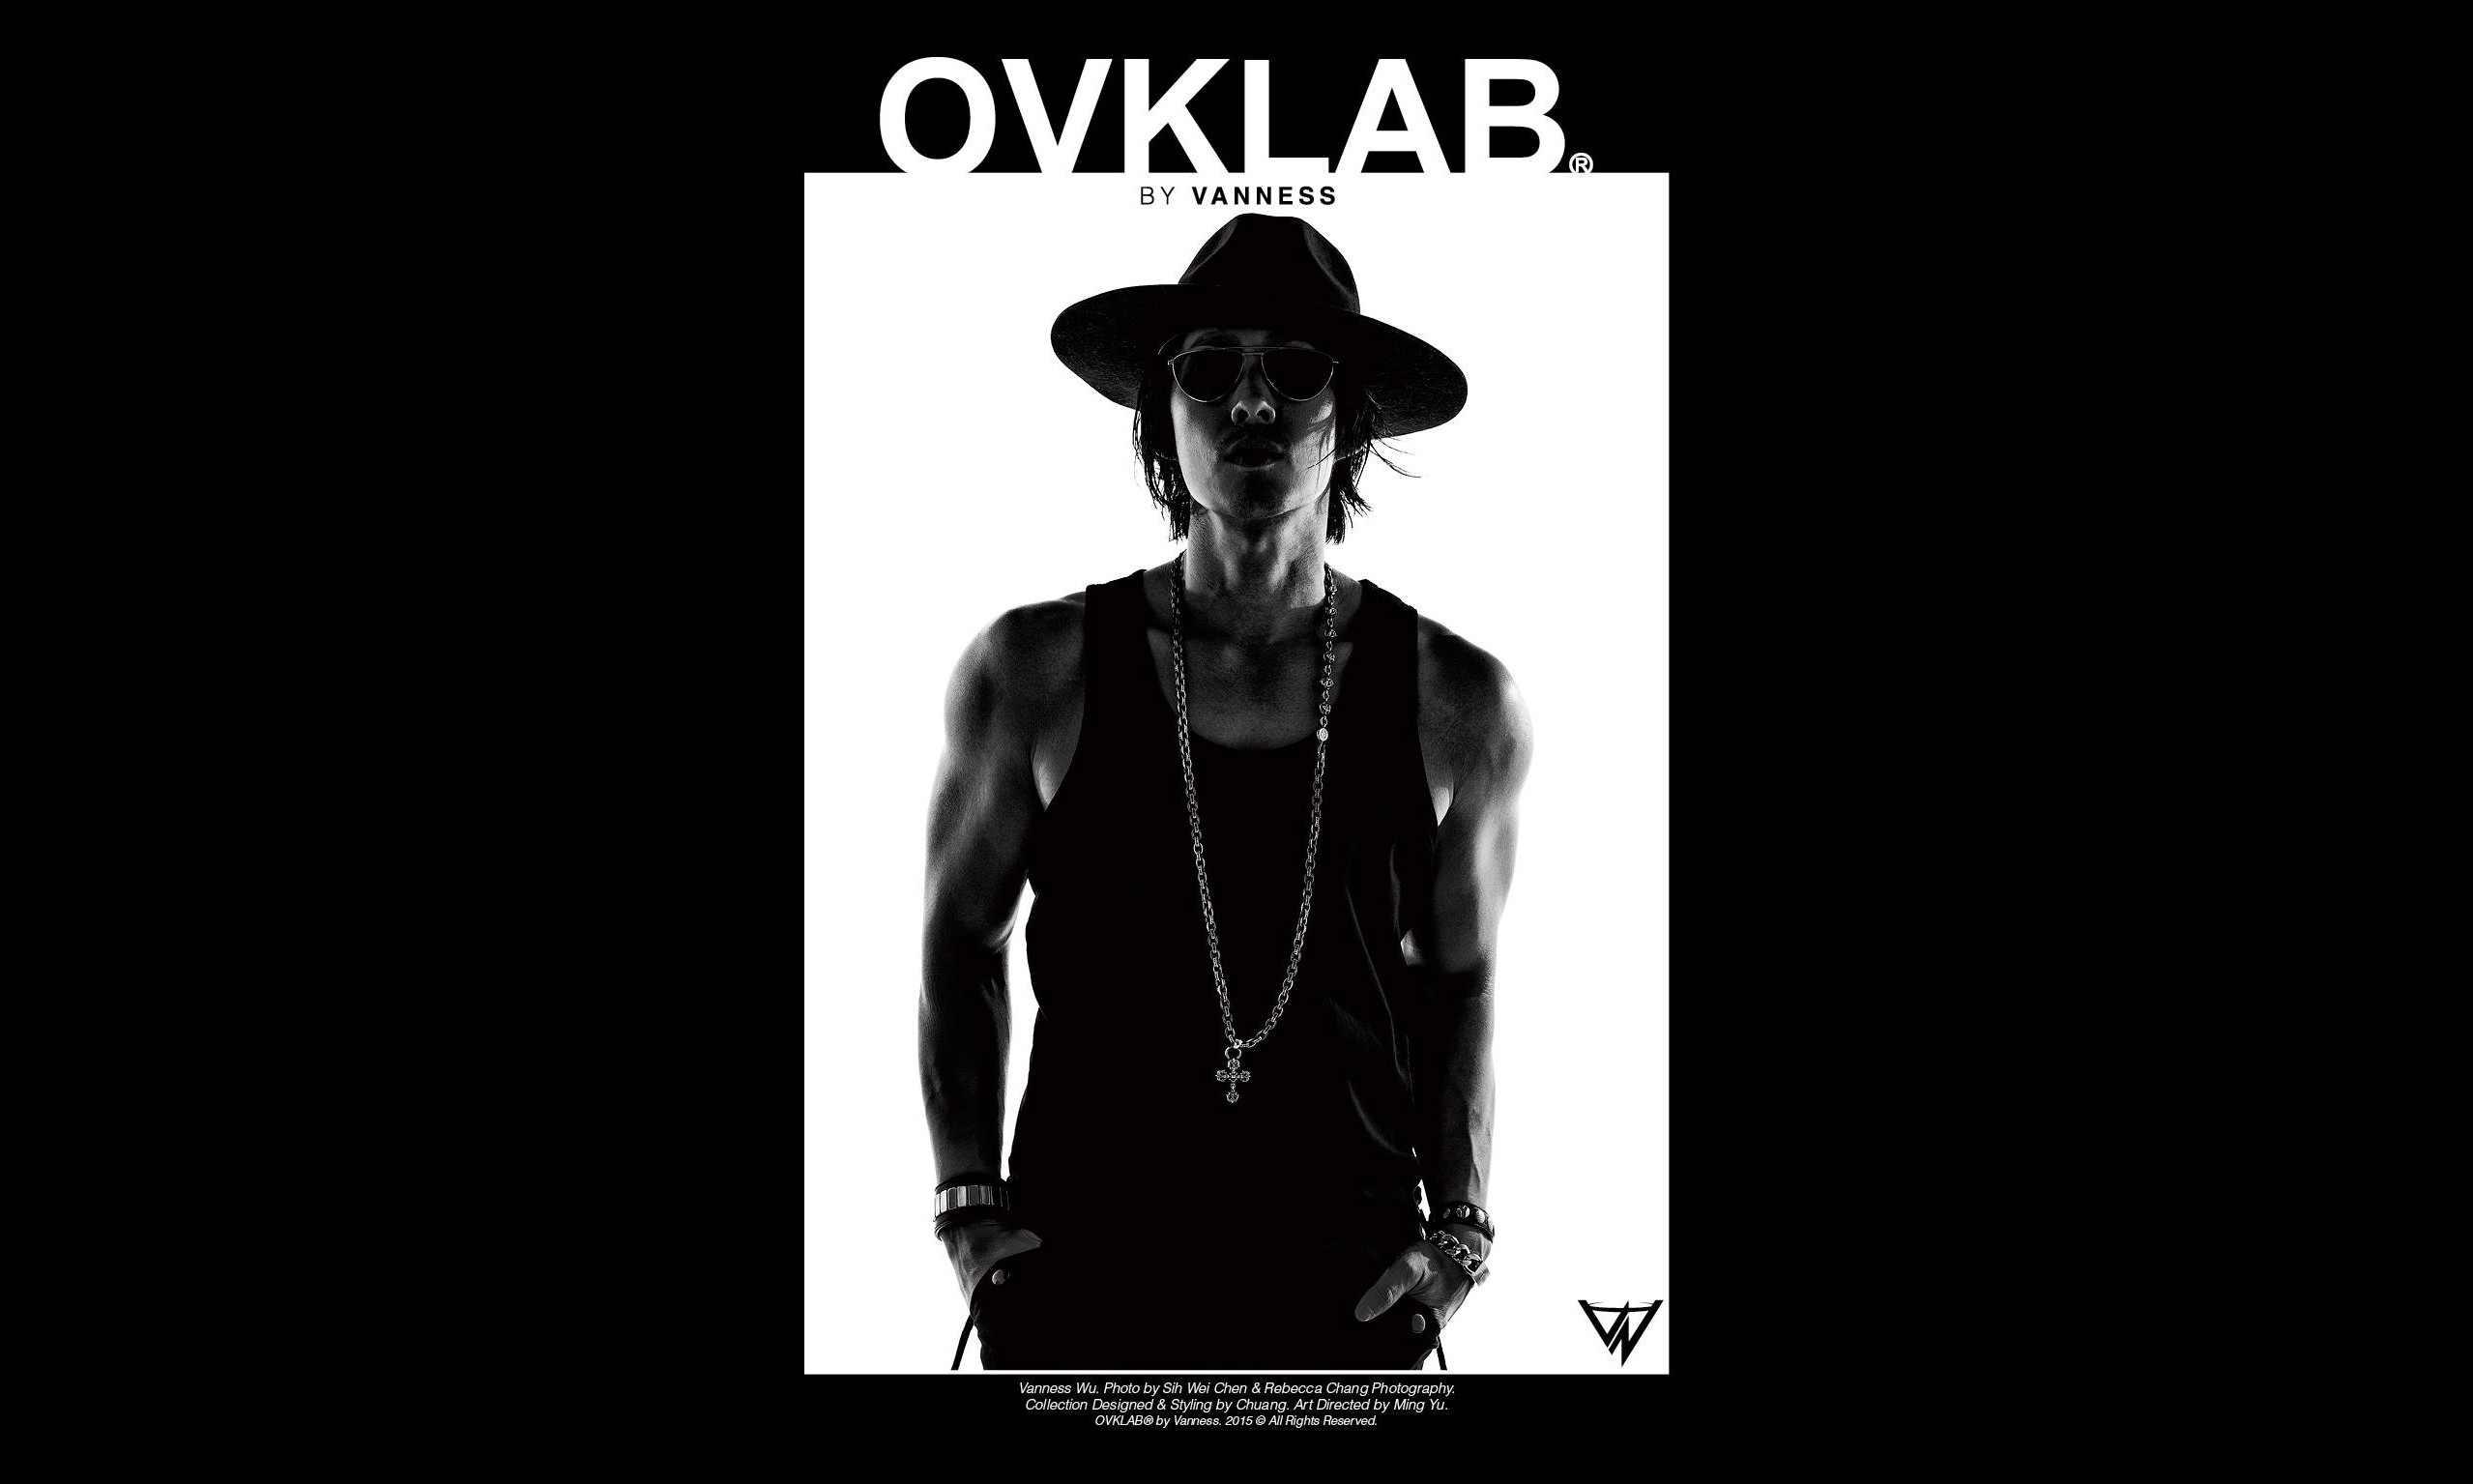 吴建豪演绎,OVKLAB® BY VANNESS 2015 秋冬造型 Lookbook 释出